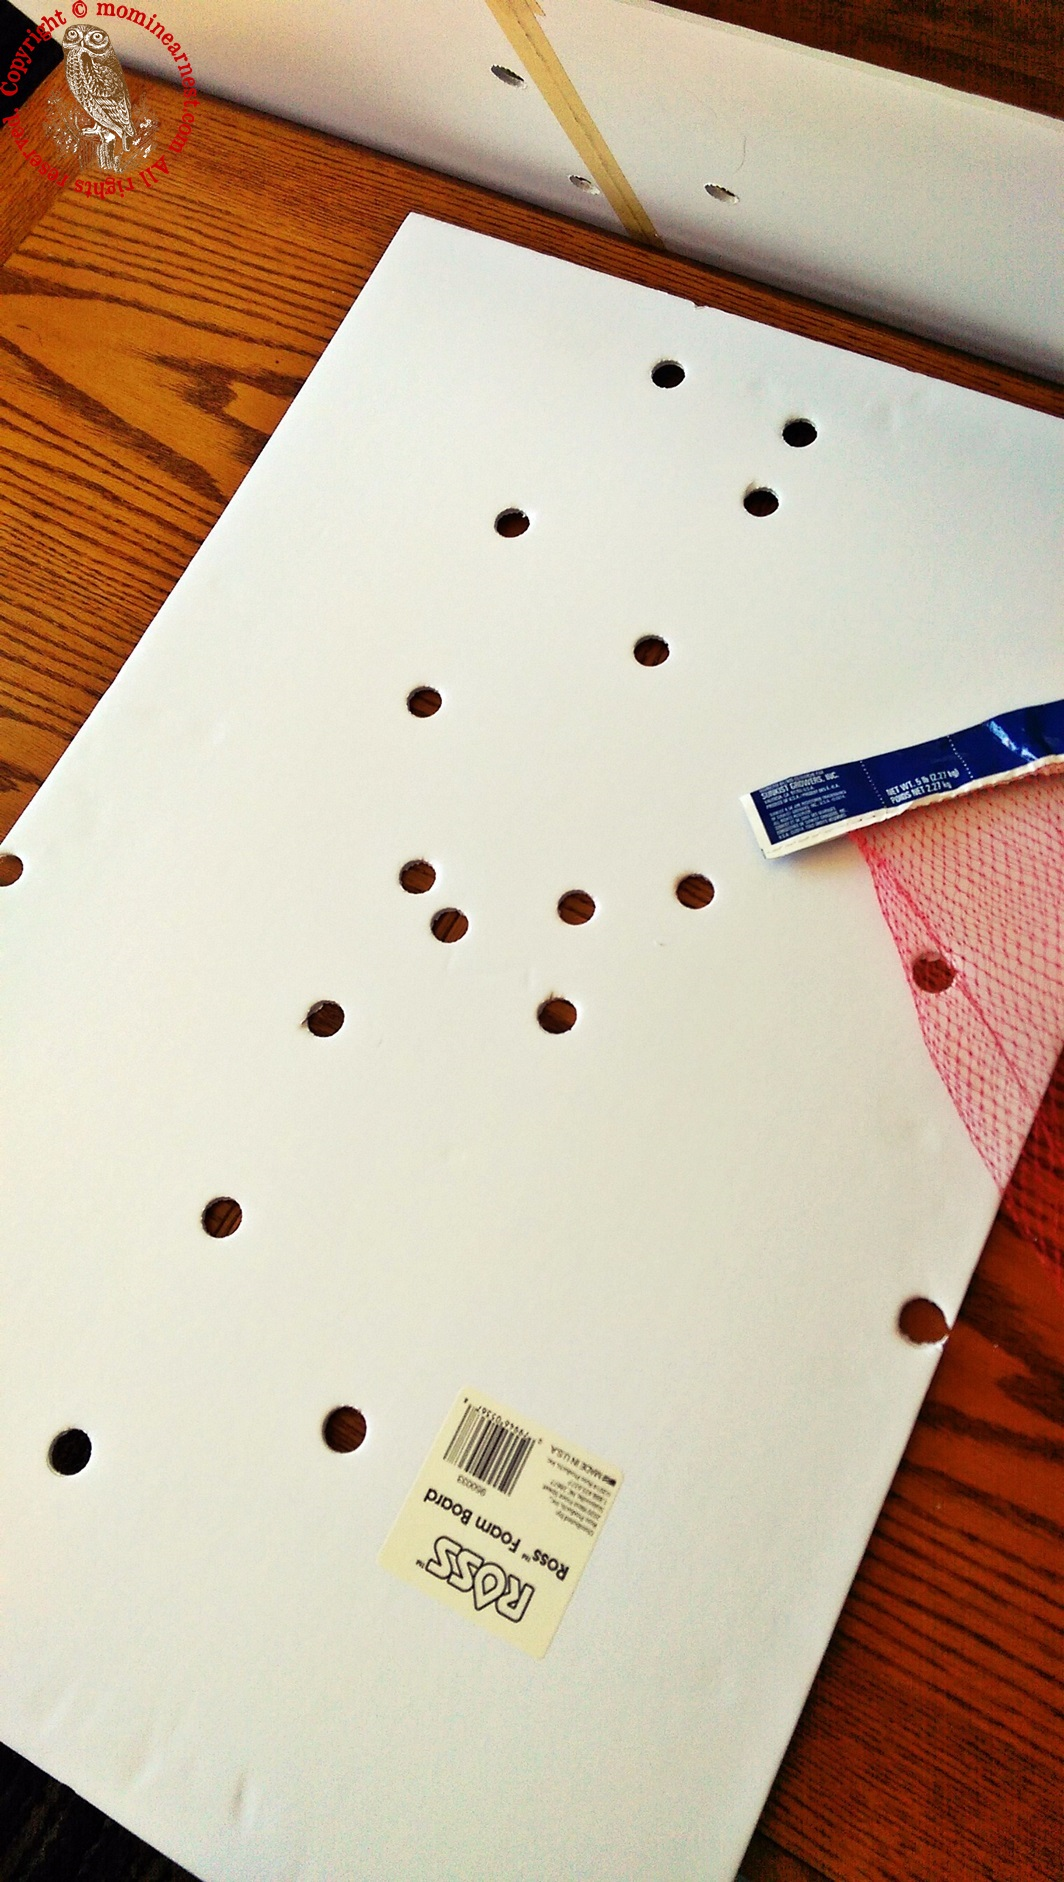 repeat pattern of holes on separate board (optional)